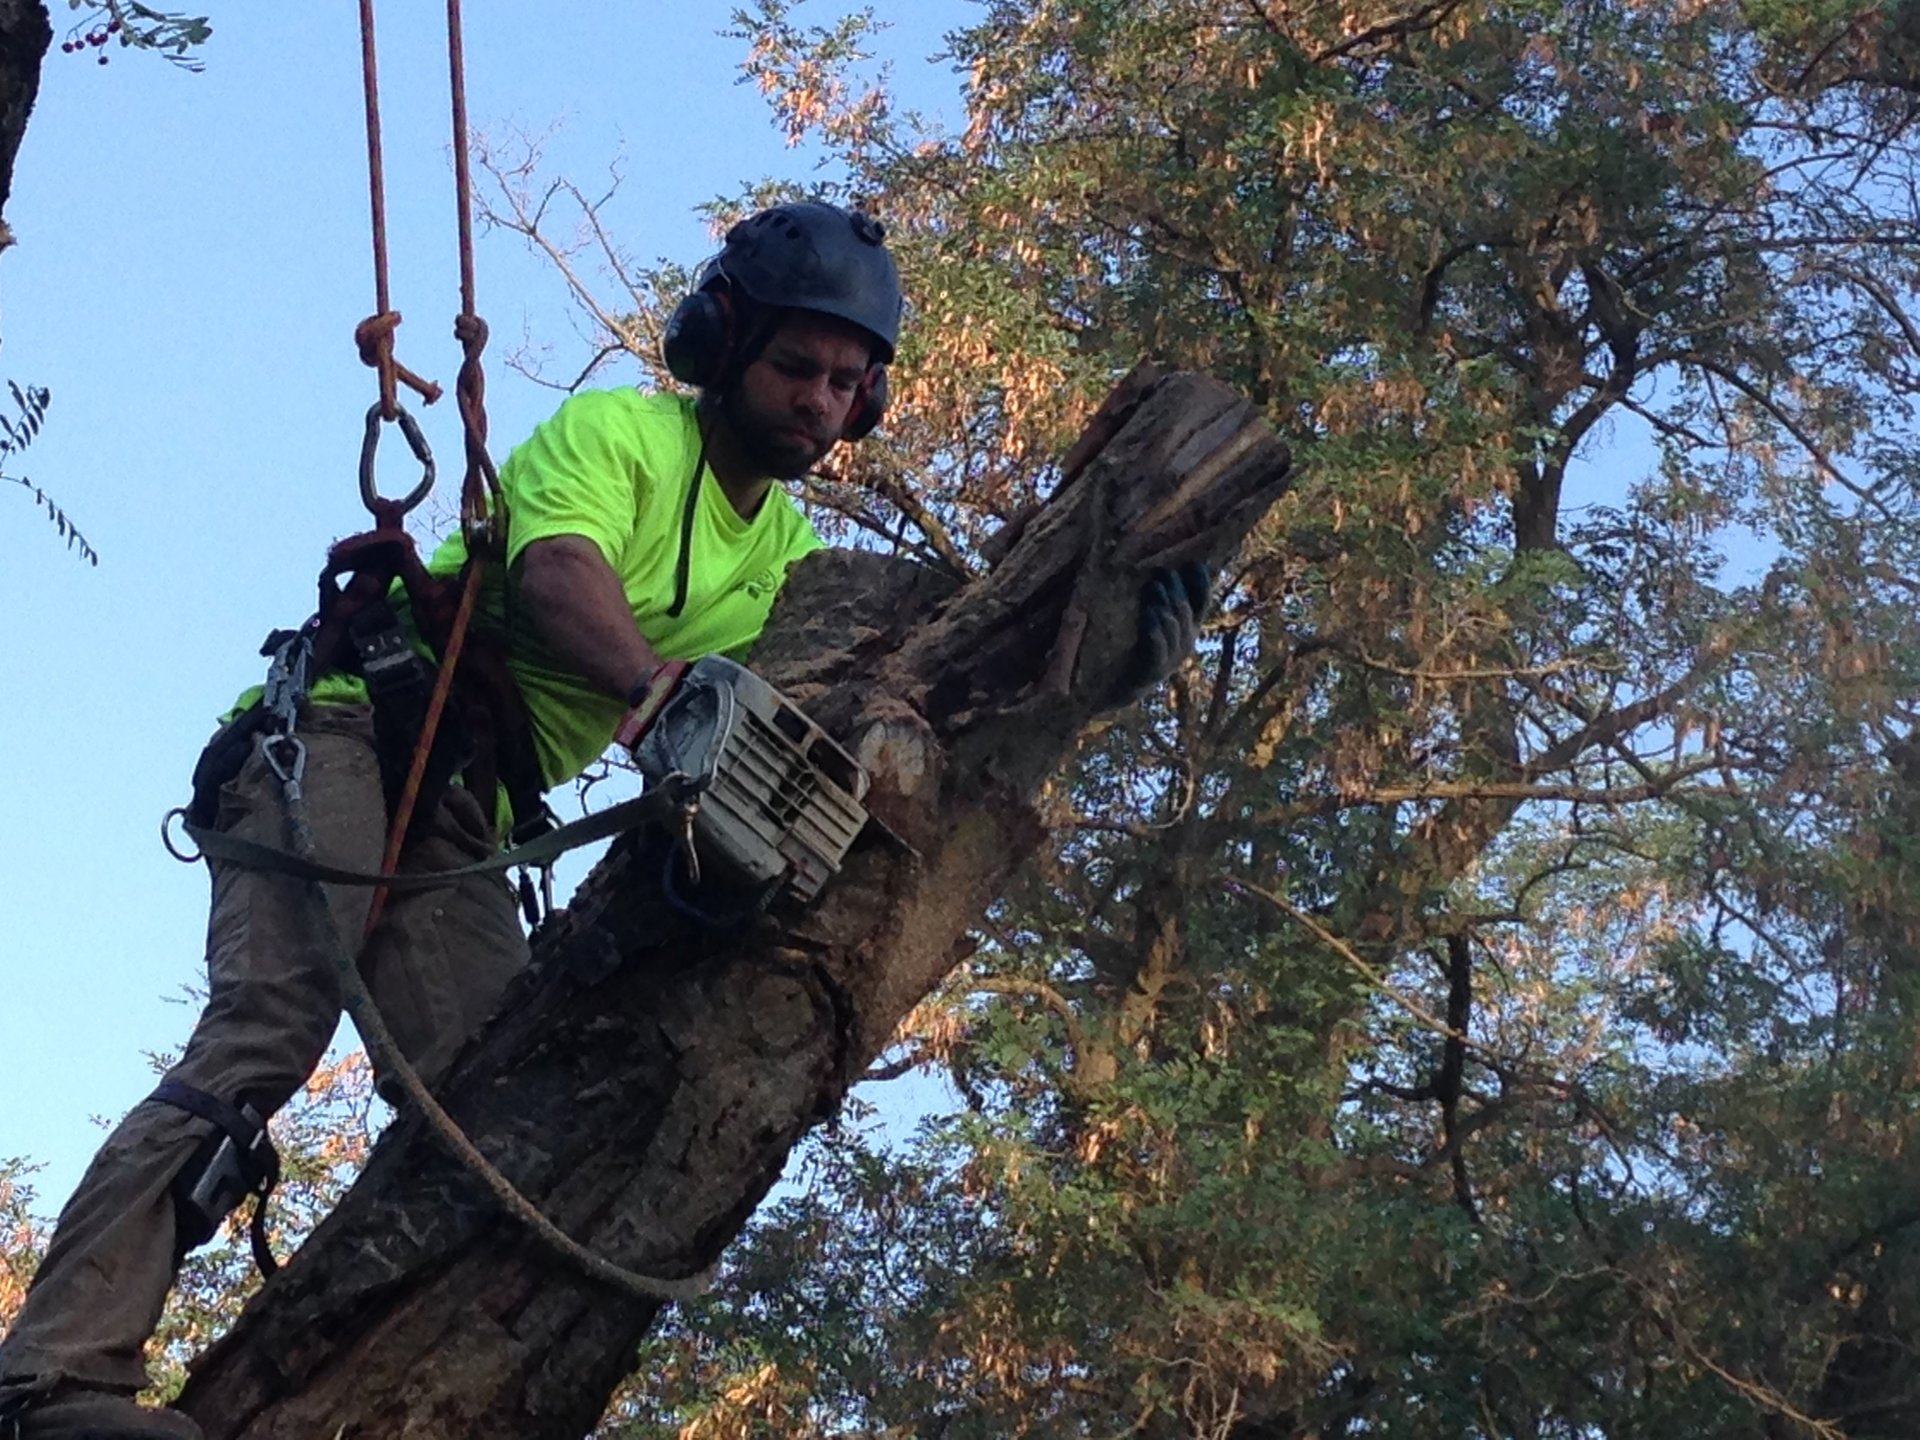 How to Avoid Accidents When Cutting Trees - Our Guide